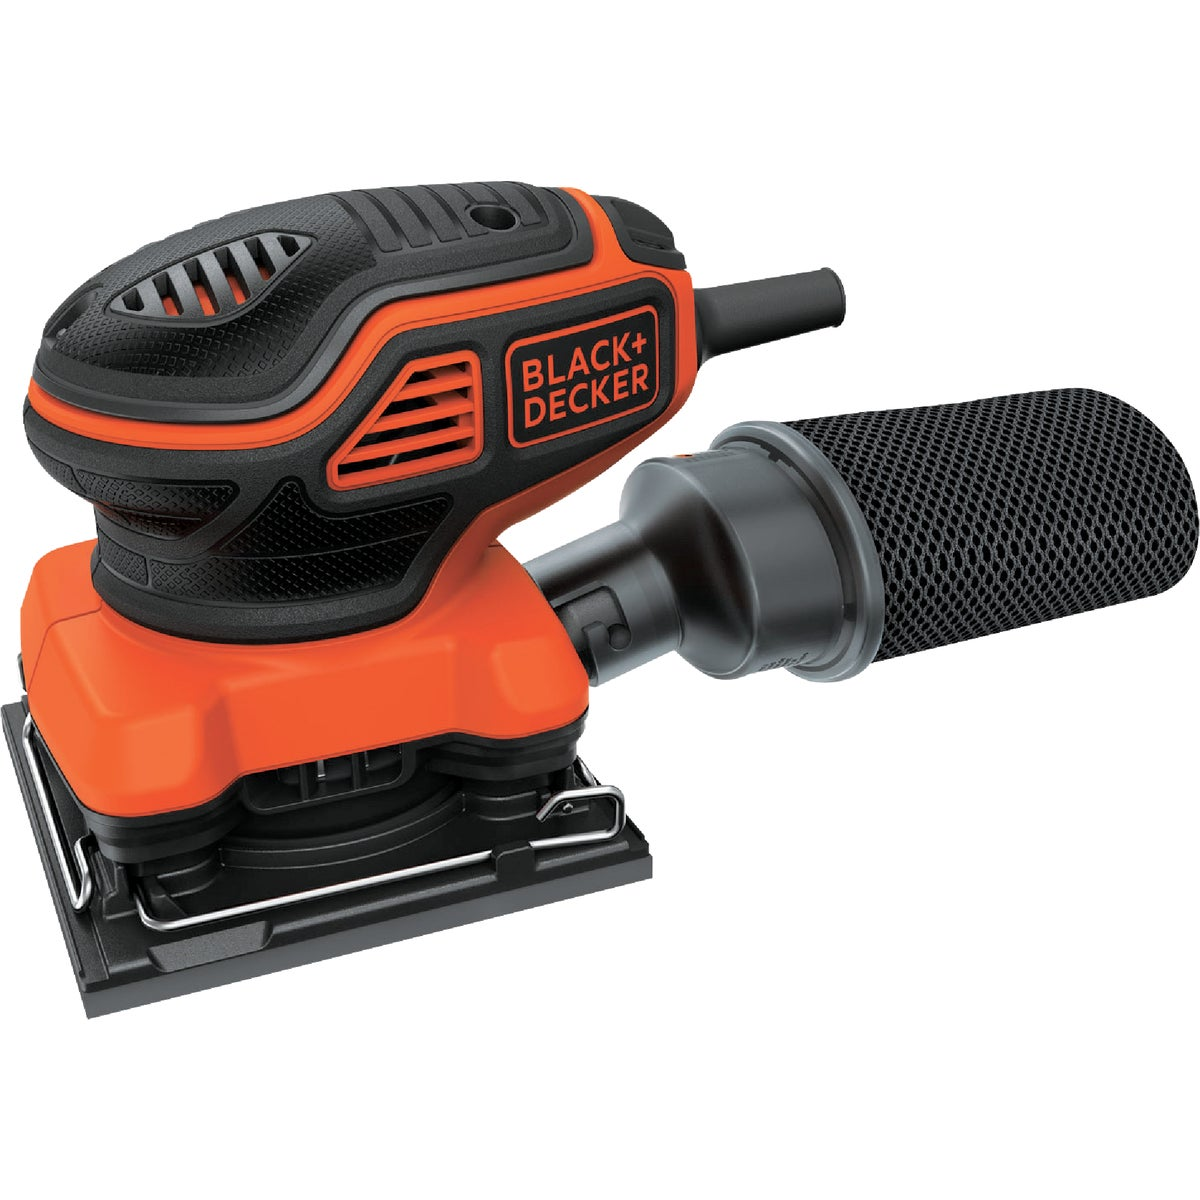 2.0 AMP 1/4 SHEET SANDER - QS900 by Black & Decker